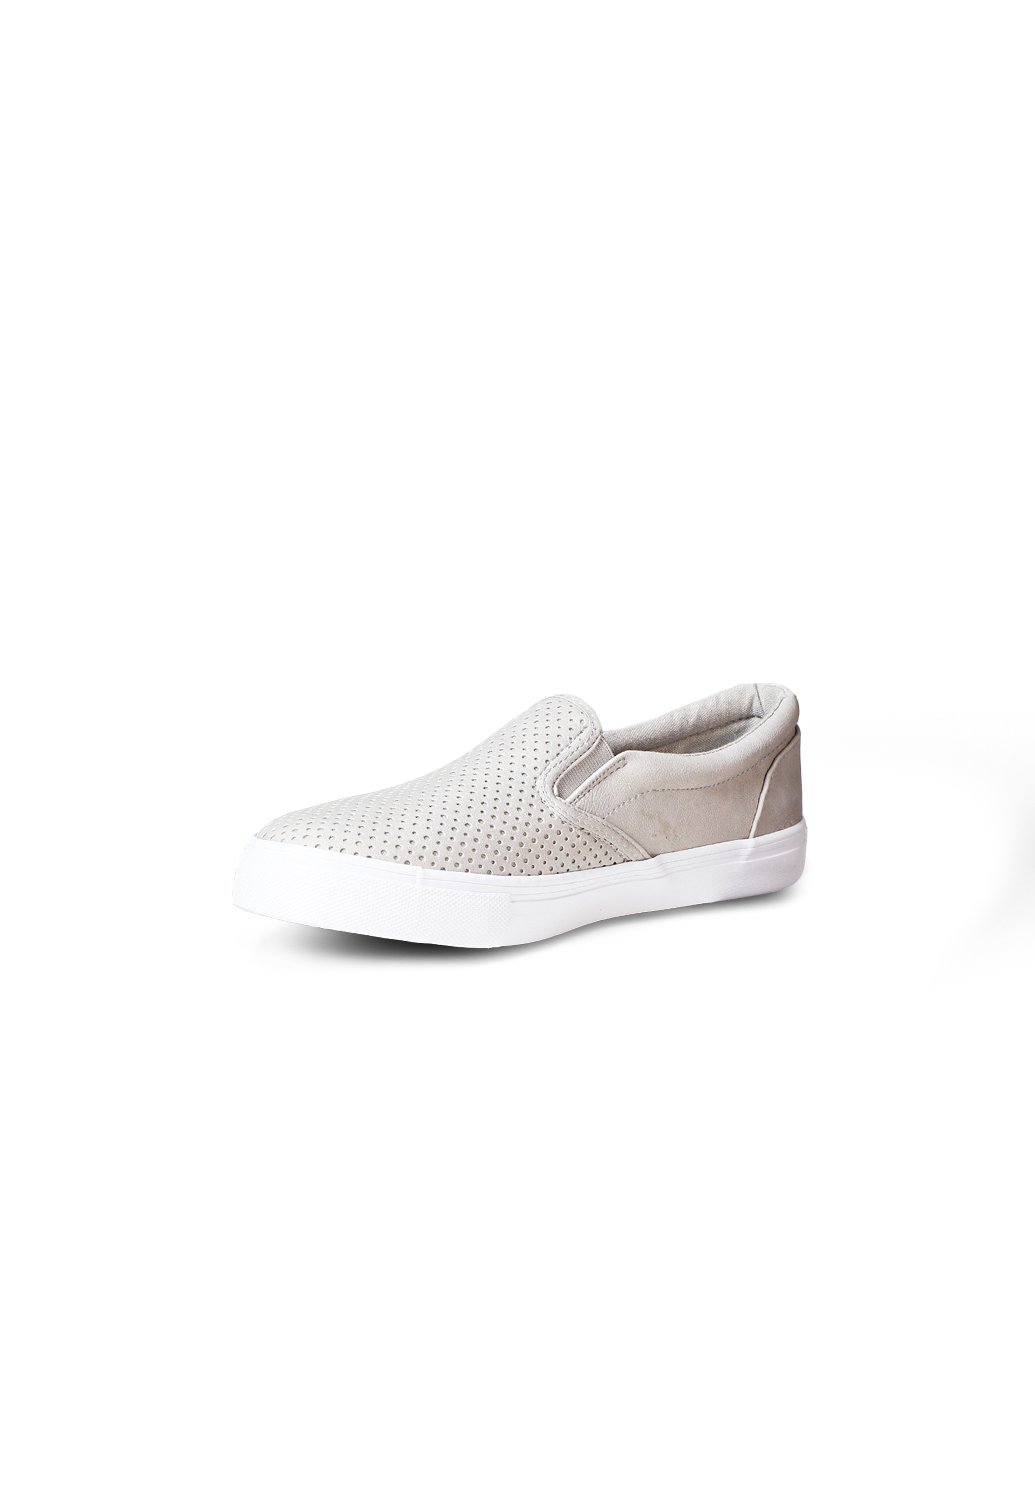 Perforated Faux Leather Slip-On